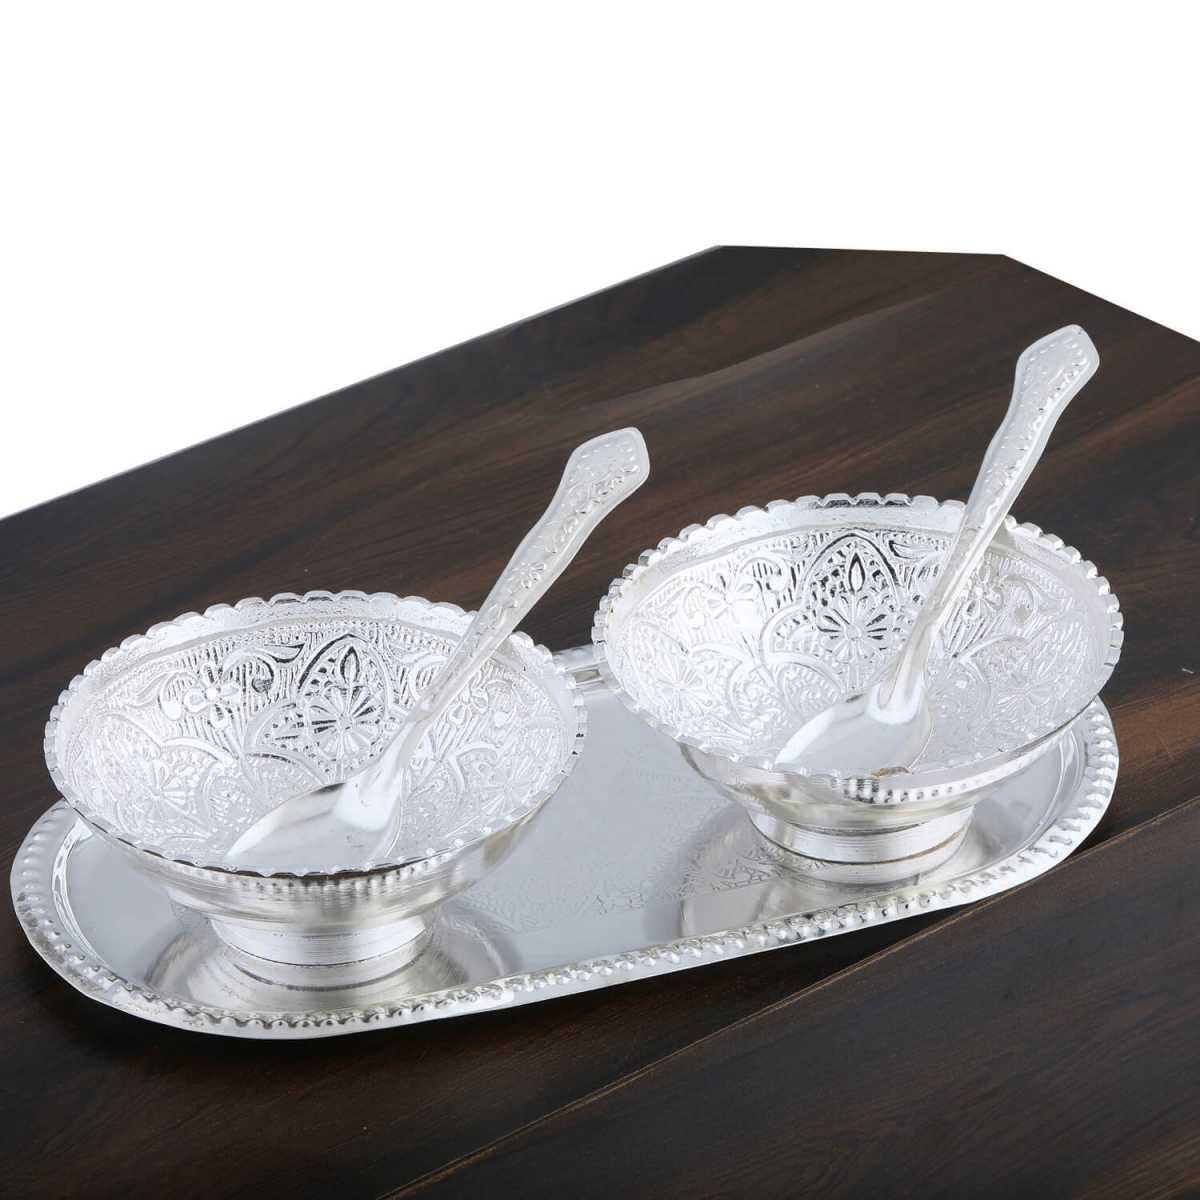 Silver Shine Gold And Silver Plated Decorative Bowl And Spoon Set For Gift-Set of 5